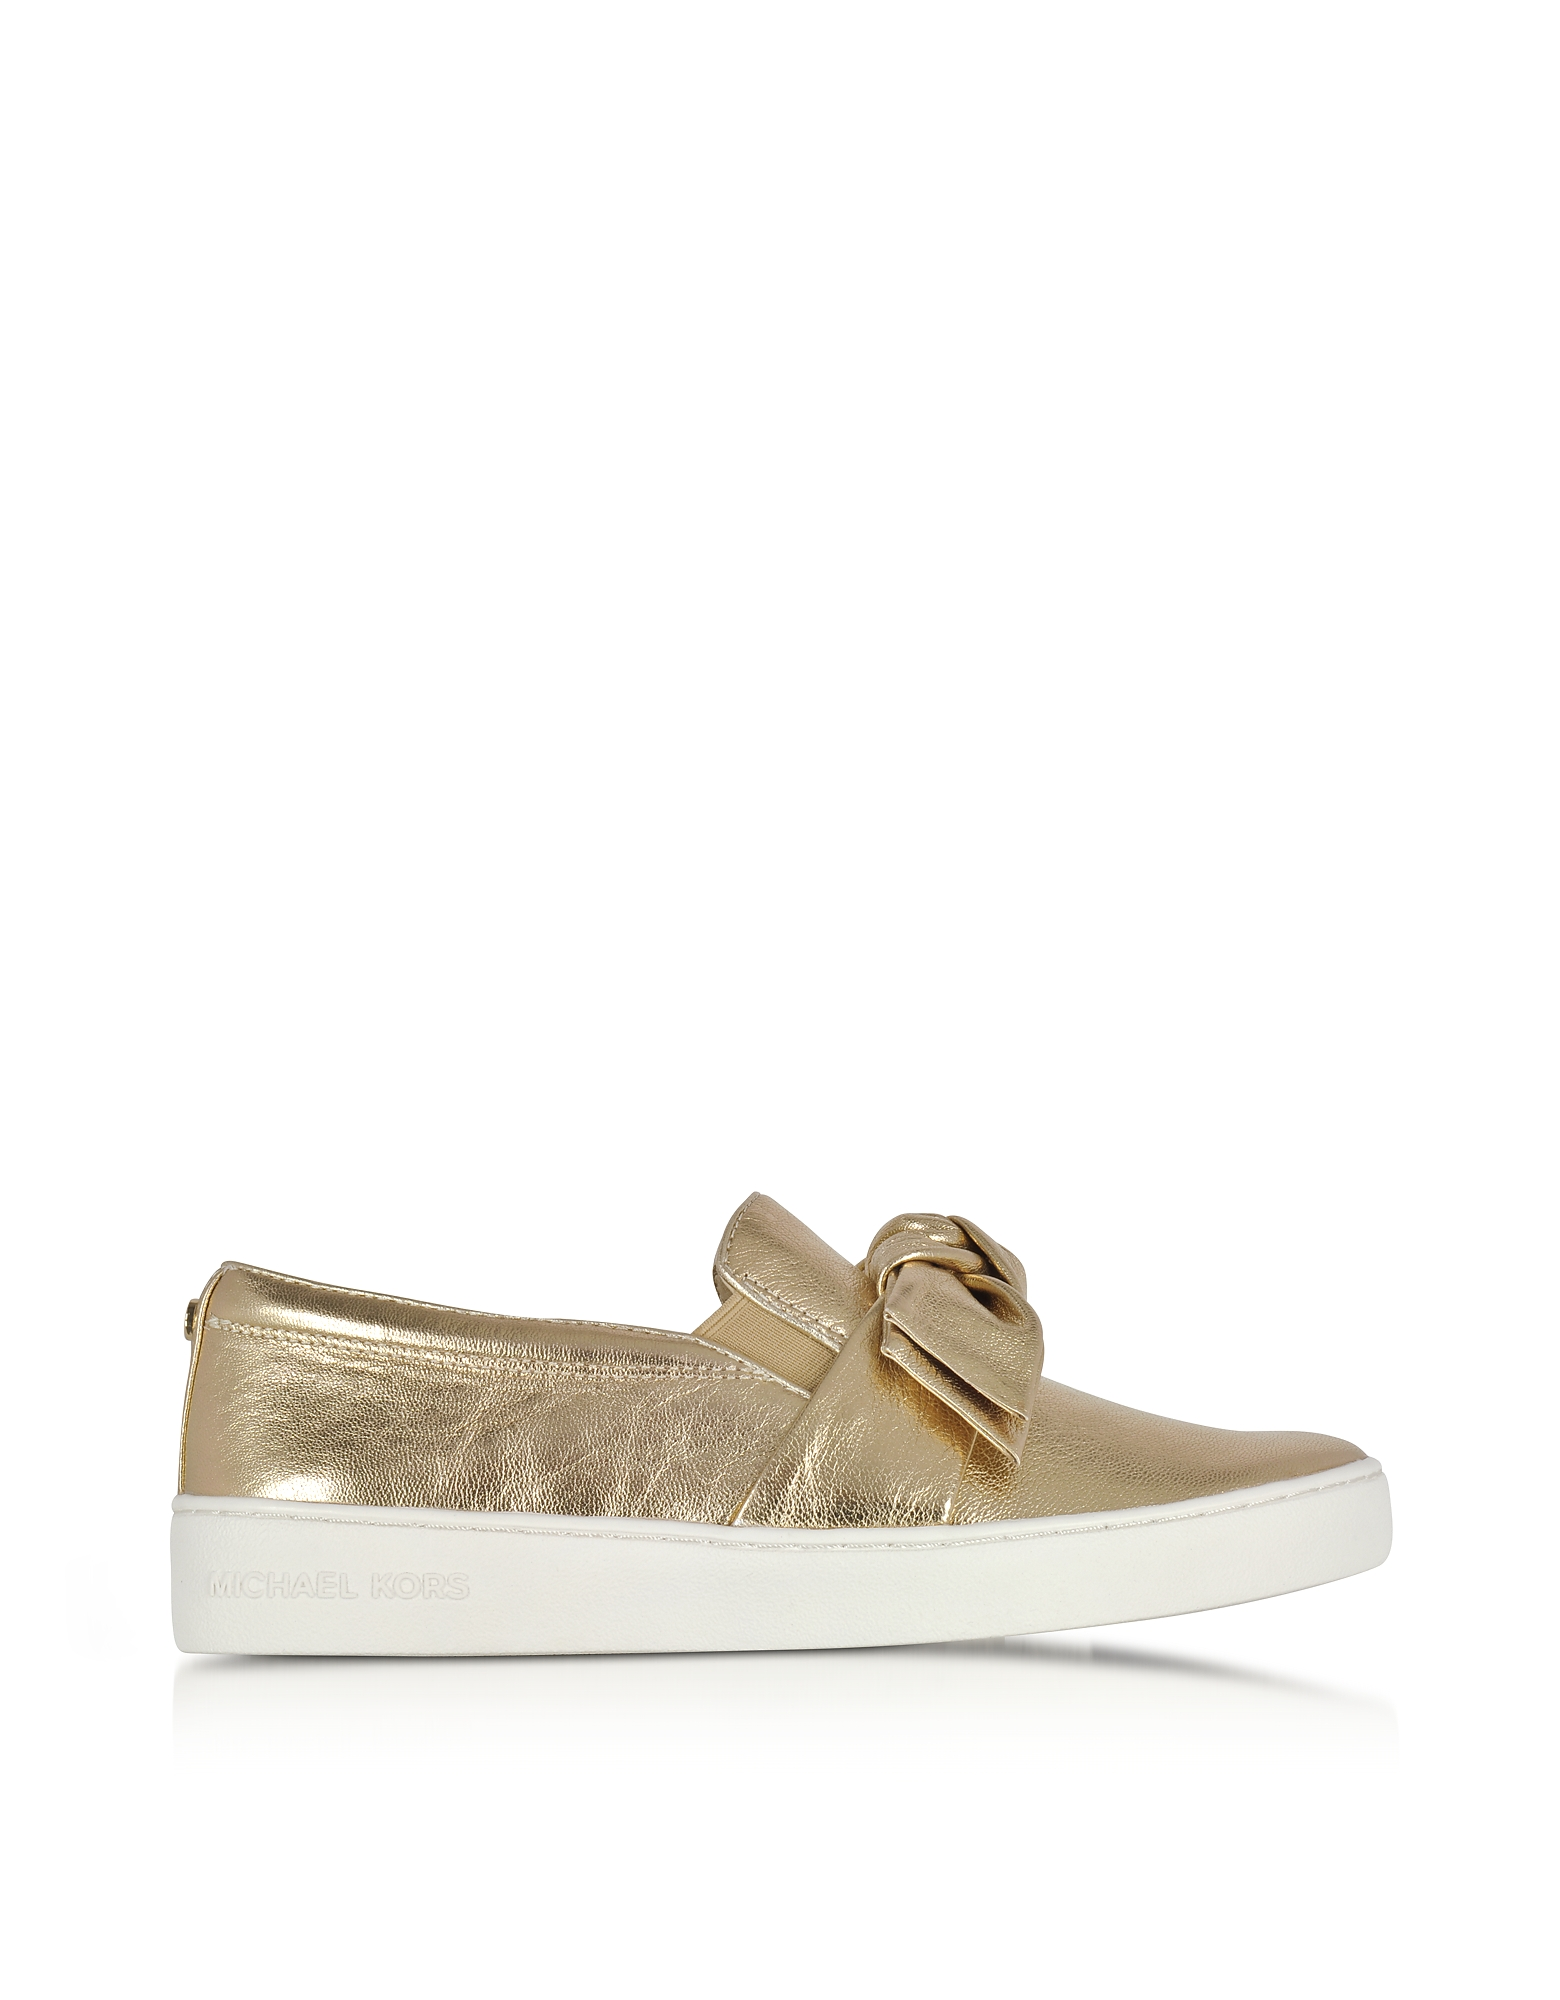 Michael Kors Shoes, Willa Pale Gold Metallic Nappa Leather Slip On Sneakers